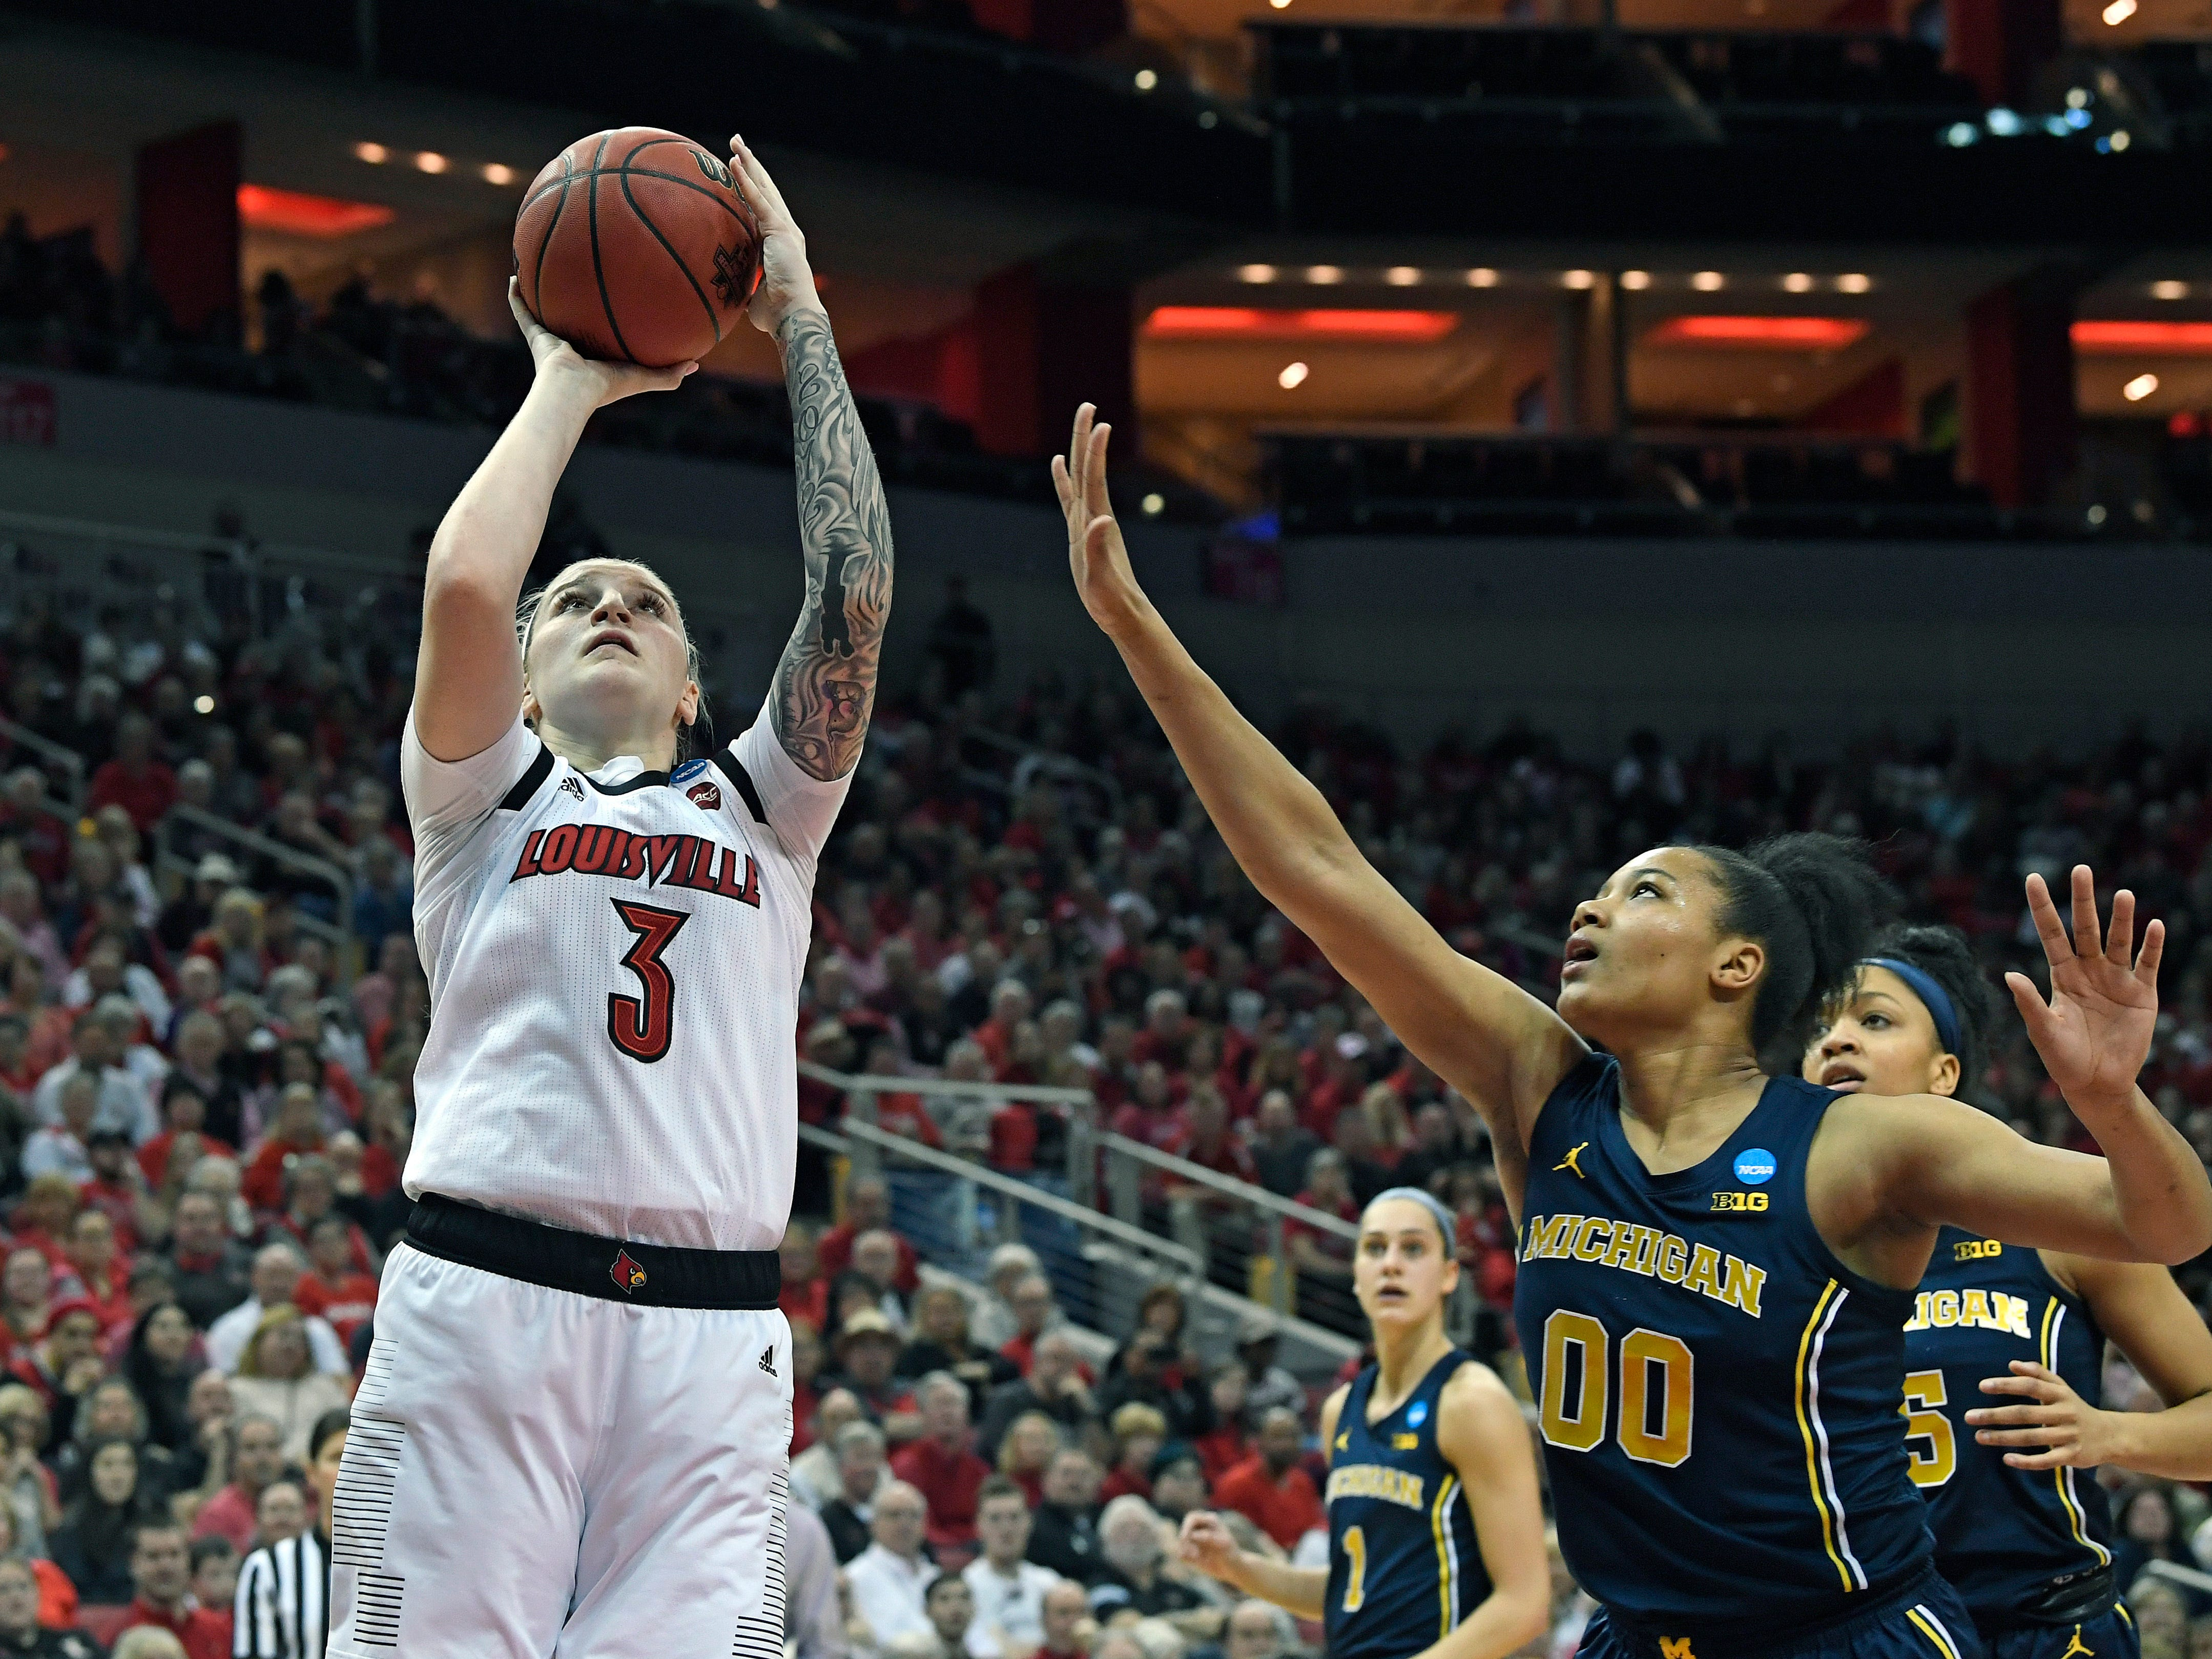 Louisville forward Sam Fuehring shoots over the defense of Michigan forward Naz Hillmon.